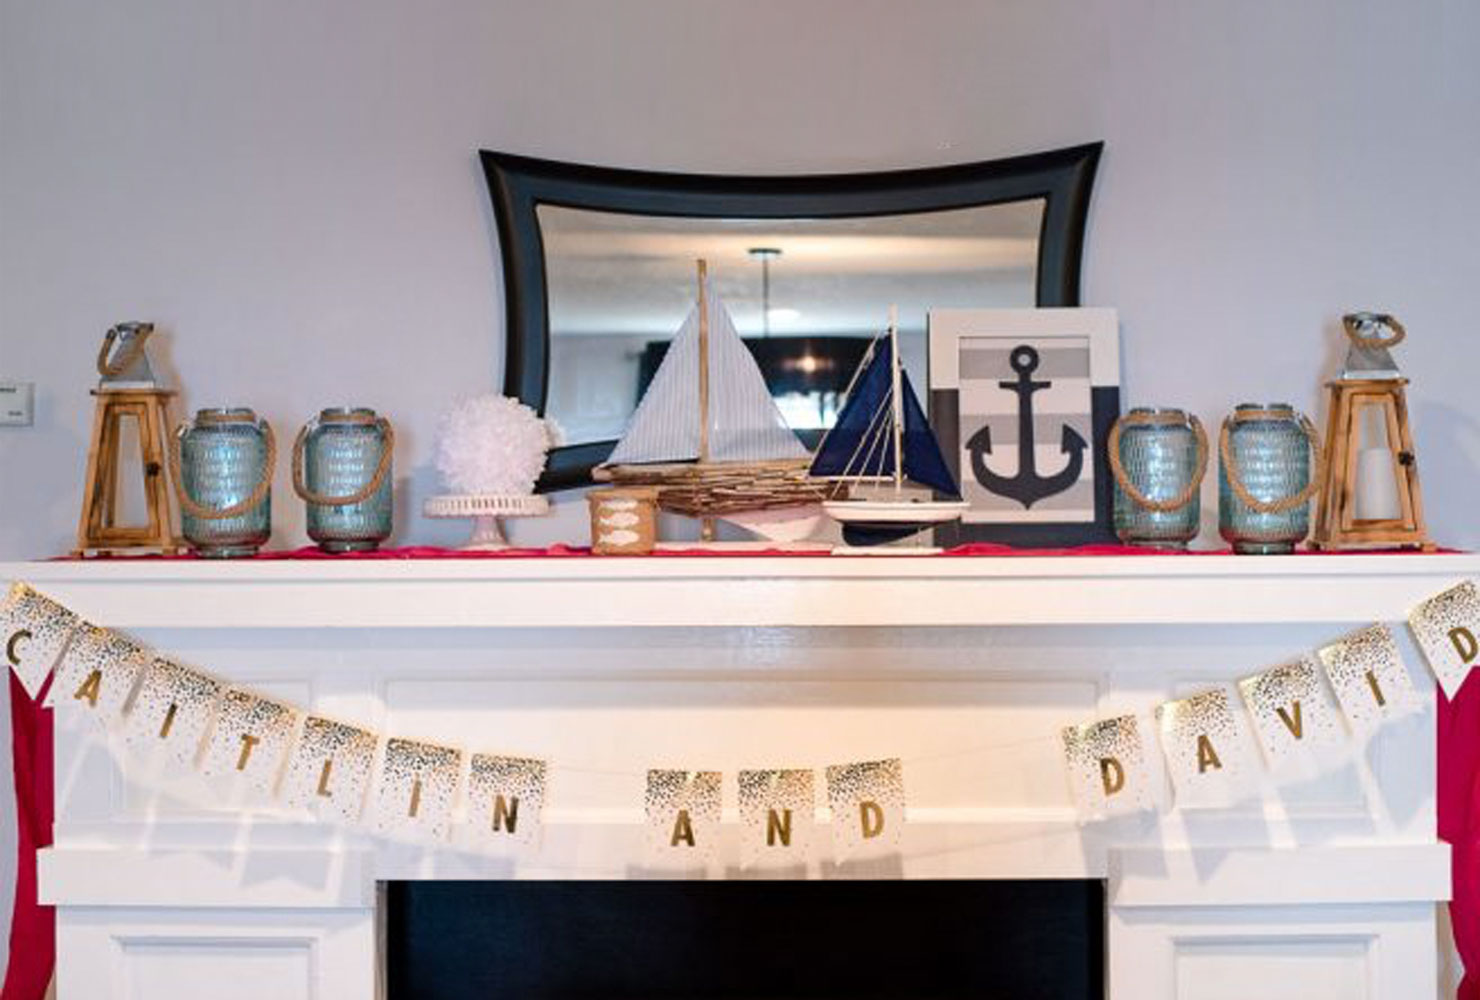 Mantel decorated with nautical accents and couple's names